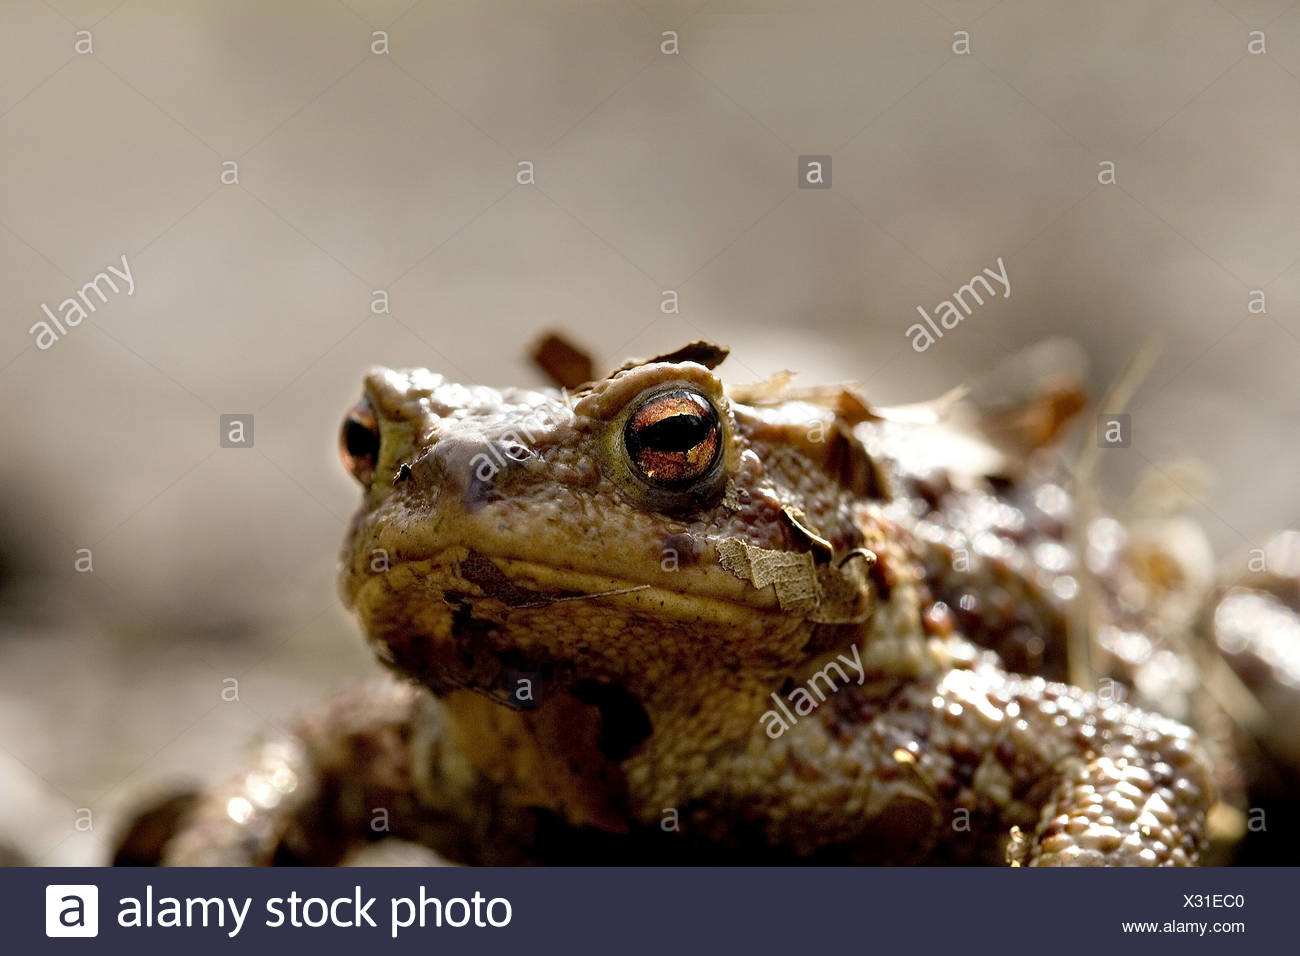 Kroete im Laub Stock Photo